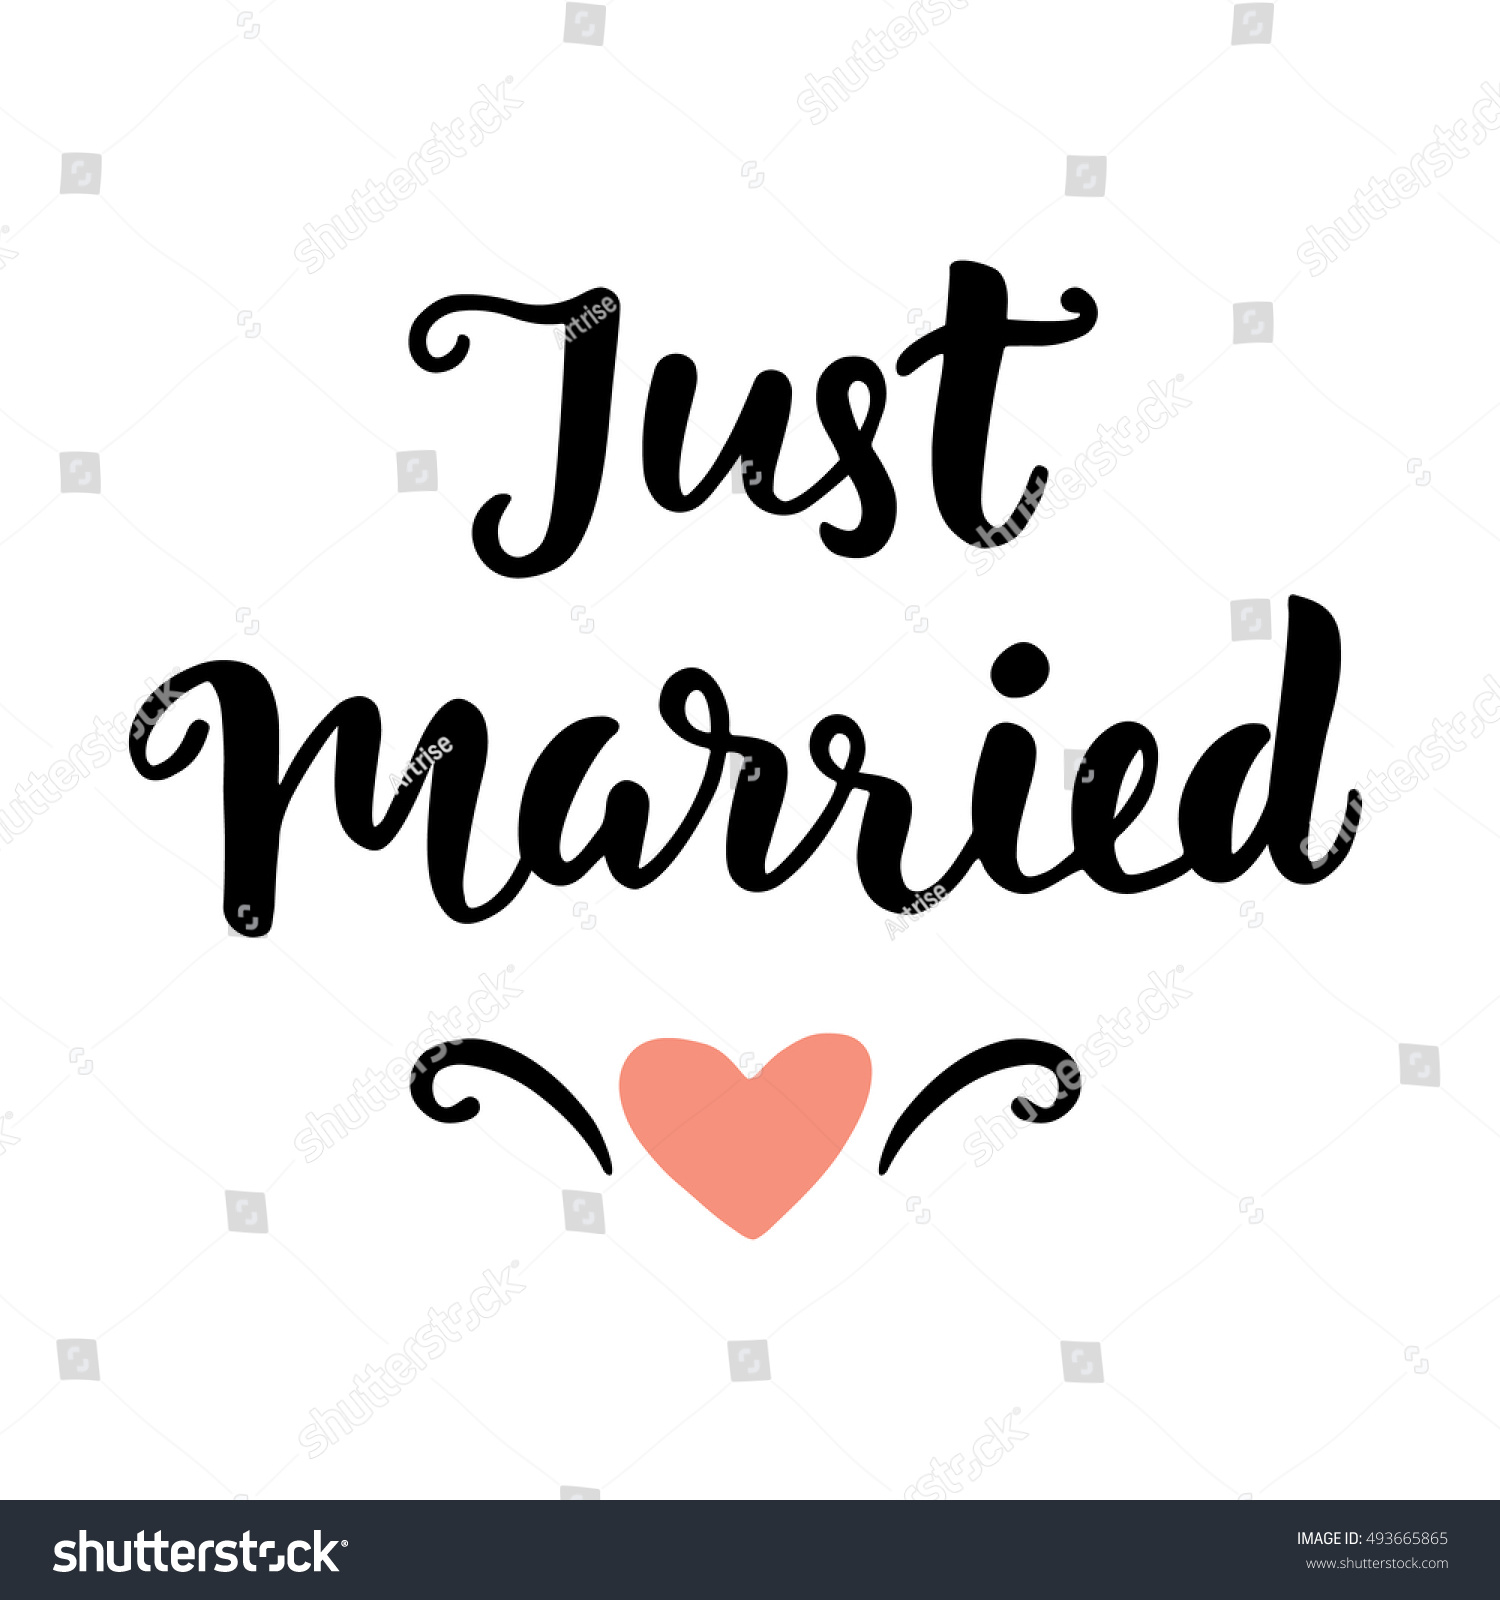 Just married wedding hand written lettering stock vector Married to design